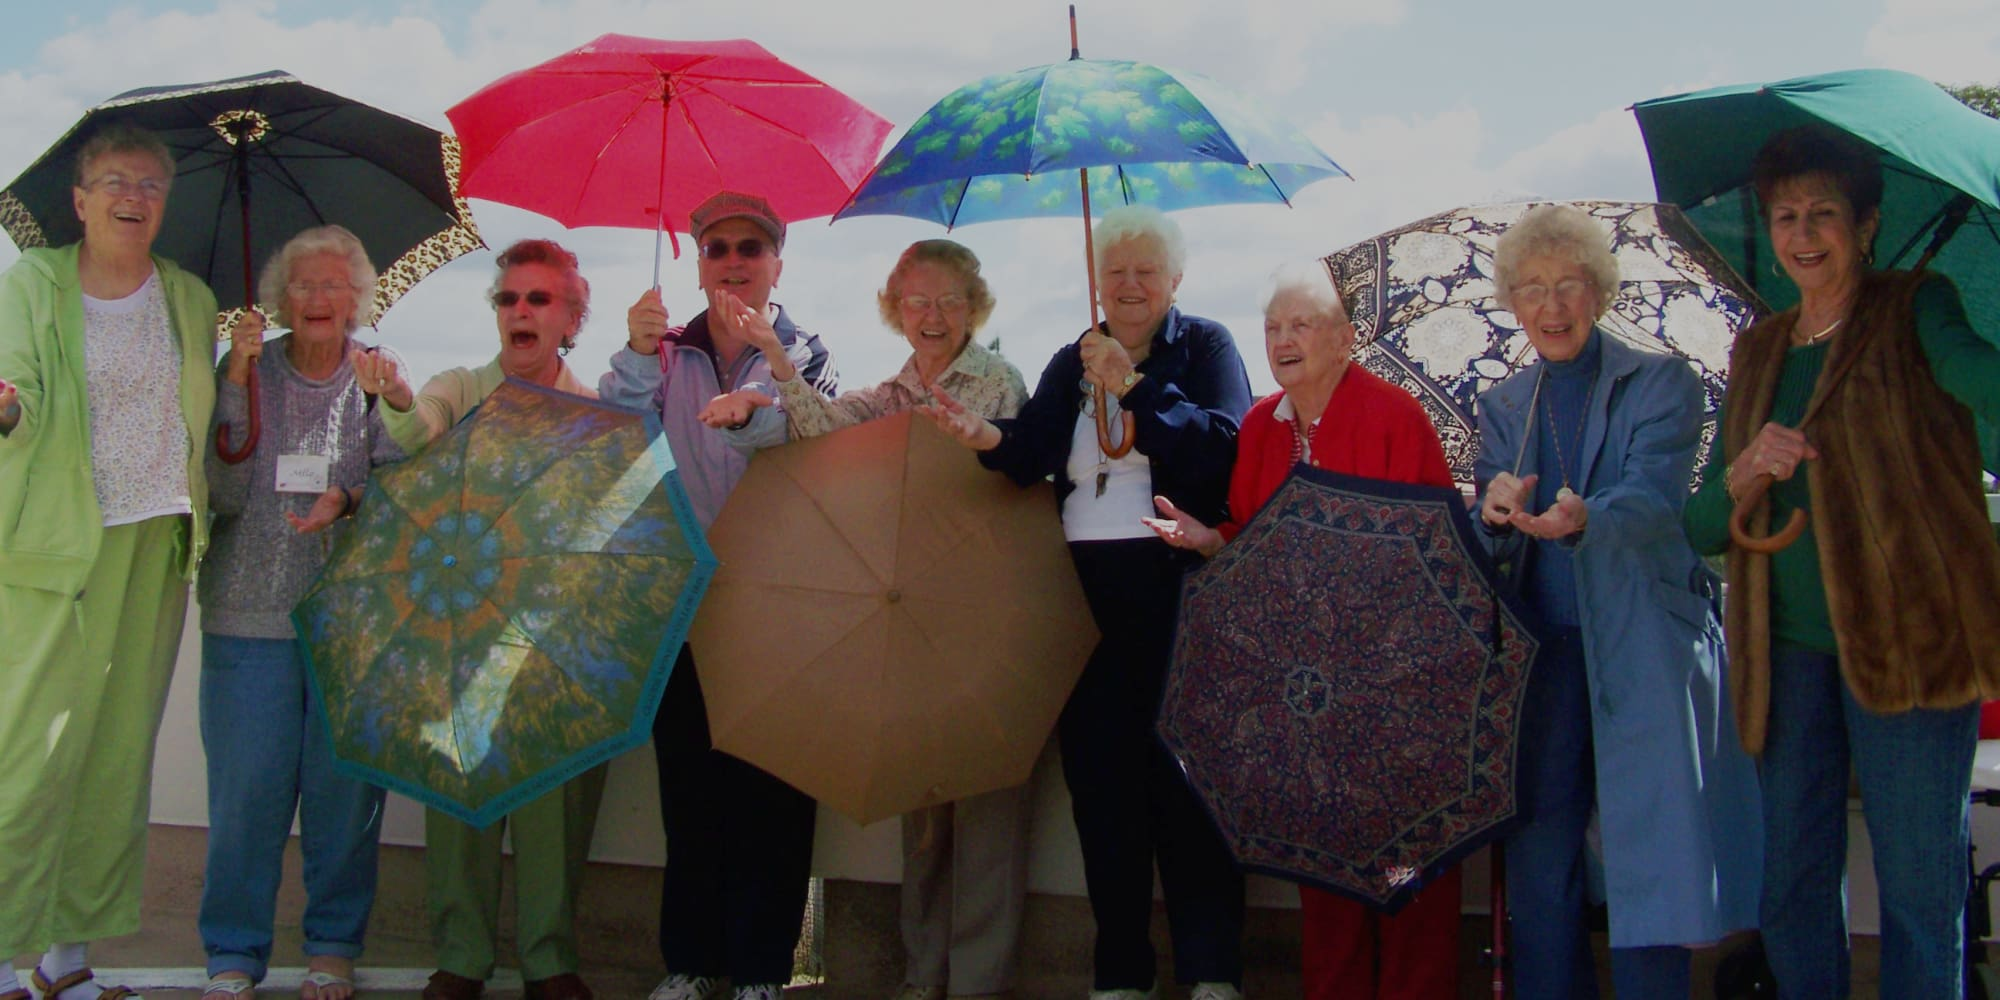 Residents from Hawthorn Senior Living in Vancouver, Washington with umbrellas, enjoying the weather